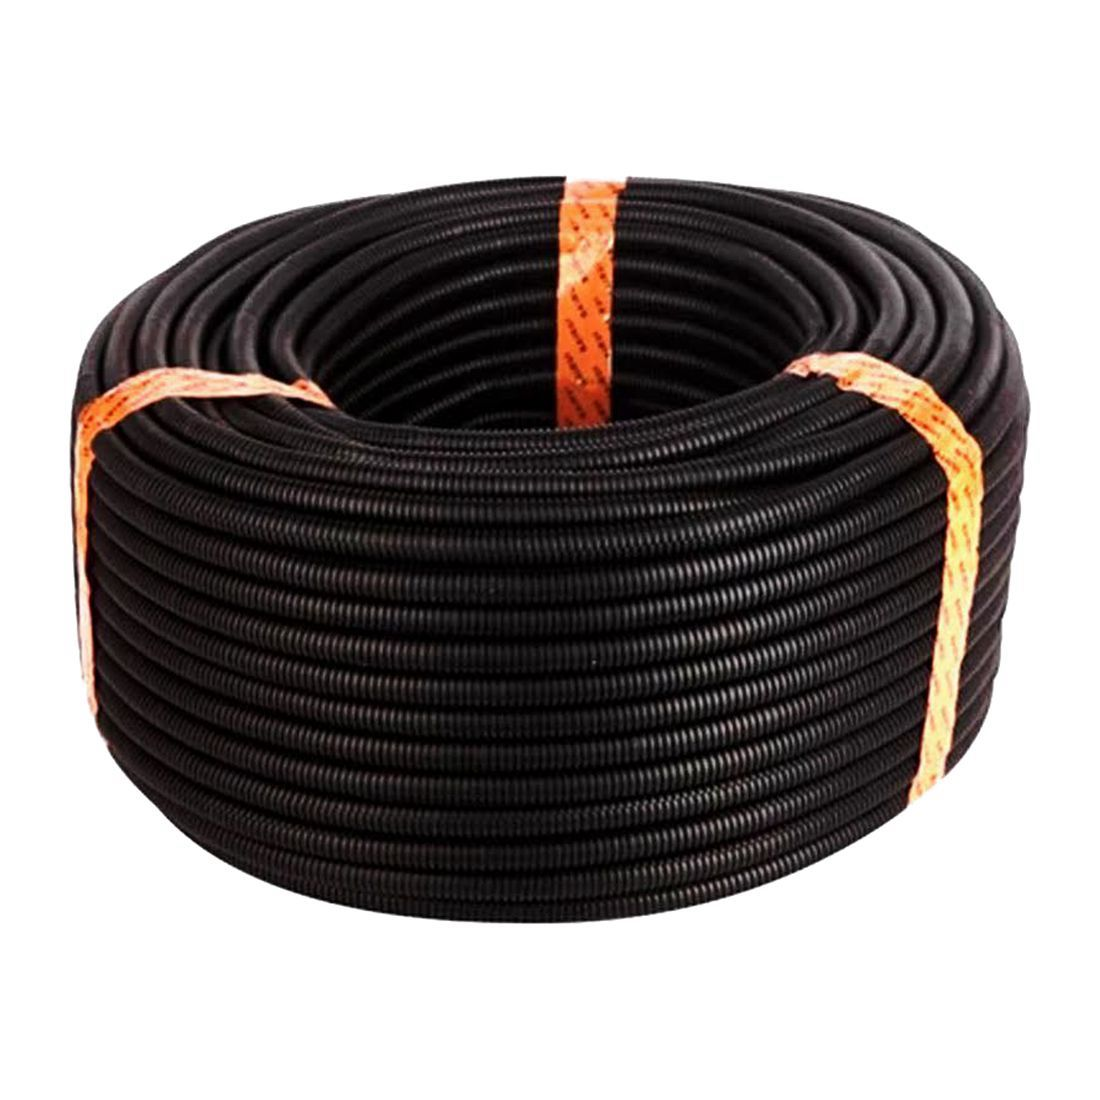 20 Ft 3/4 inch Split Wire Loom Conduit Polyethylene Tubing Black Color Sleeve Tube20 Ft 3/4 inch Split Wire Loom Conduit Polyethylene Tubing Black Color Sleeve Tube